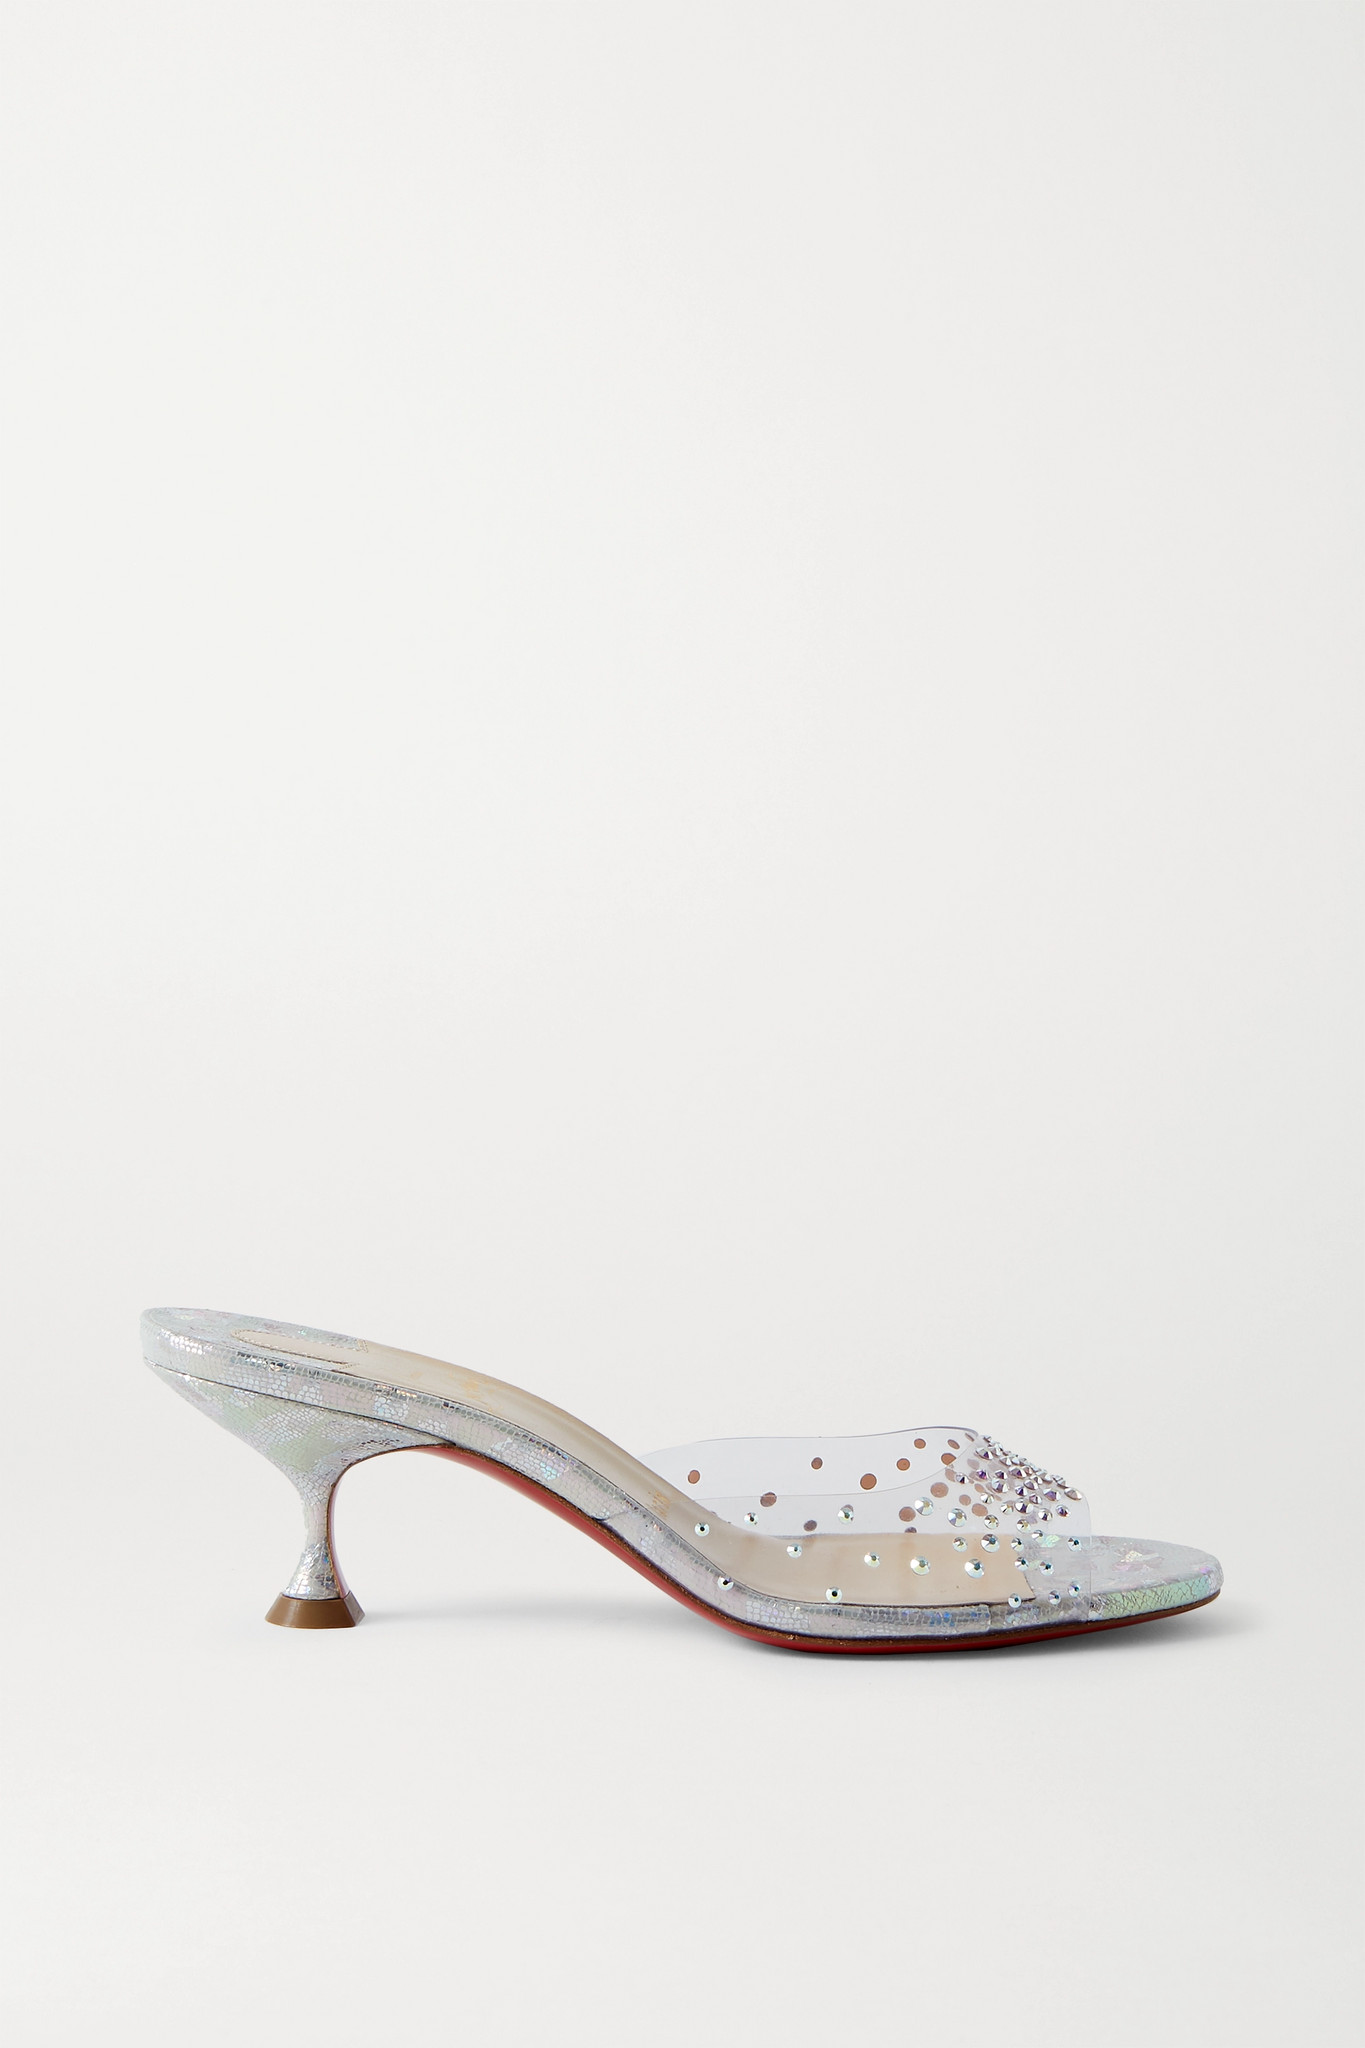 CHRISTIAN LOUBOUTIN - Pailettacan 55 Crystal-embellished Pvc And Iridescent Snake-effect Leather Mul